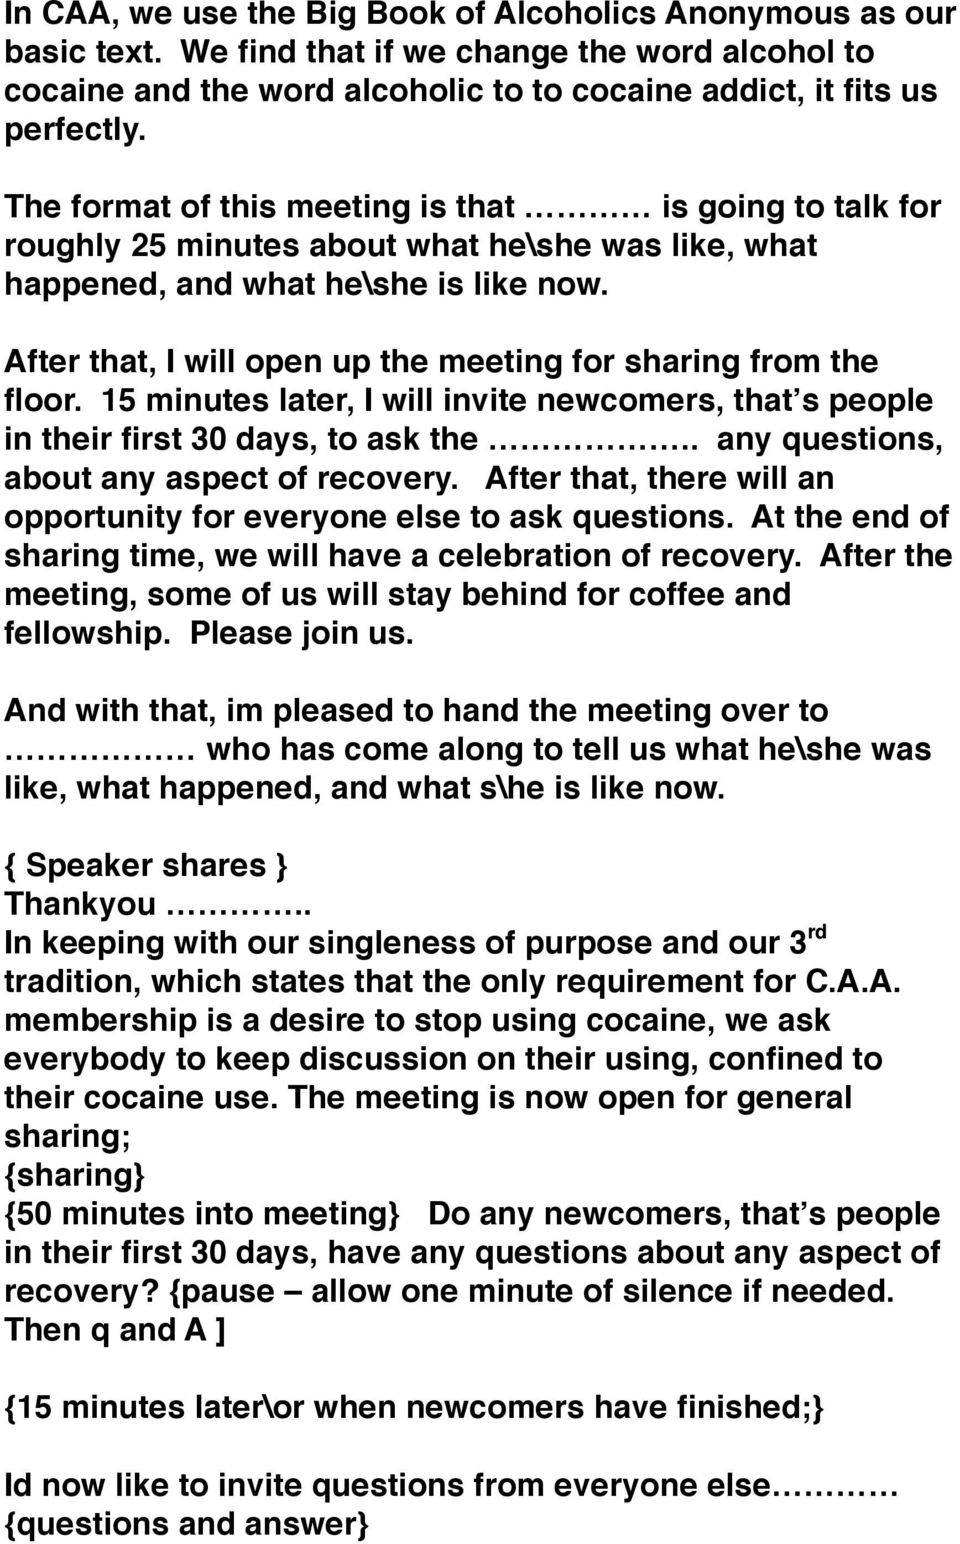 MEETING FORMAT 1: SHARE MEETING WITH QUESTION AND ANSER